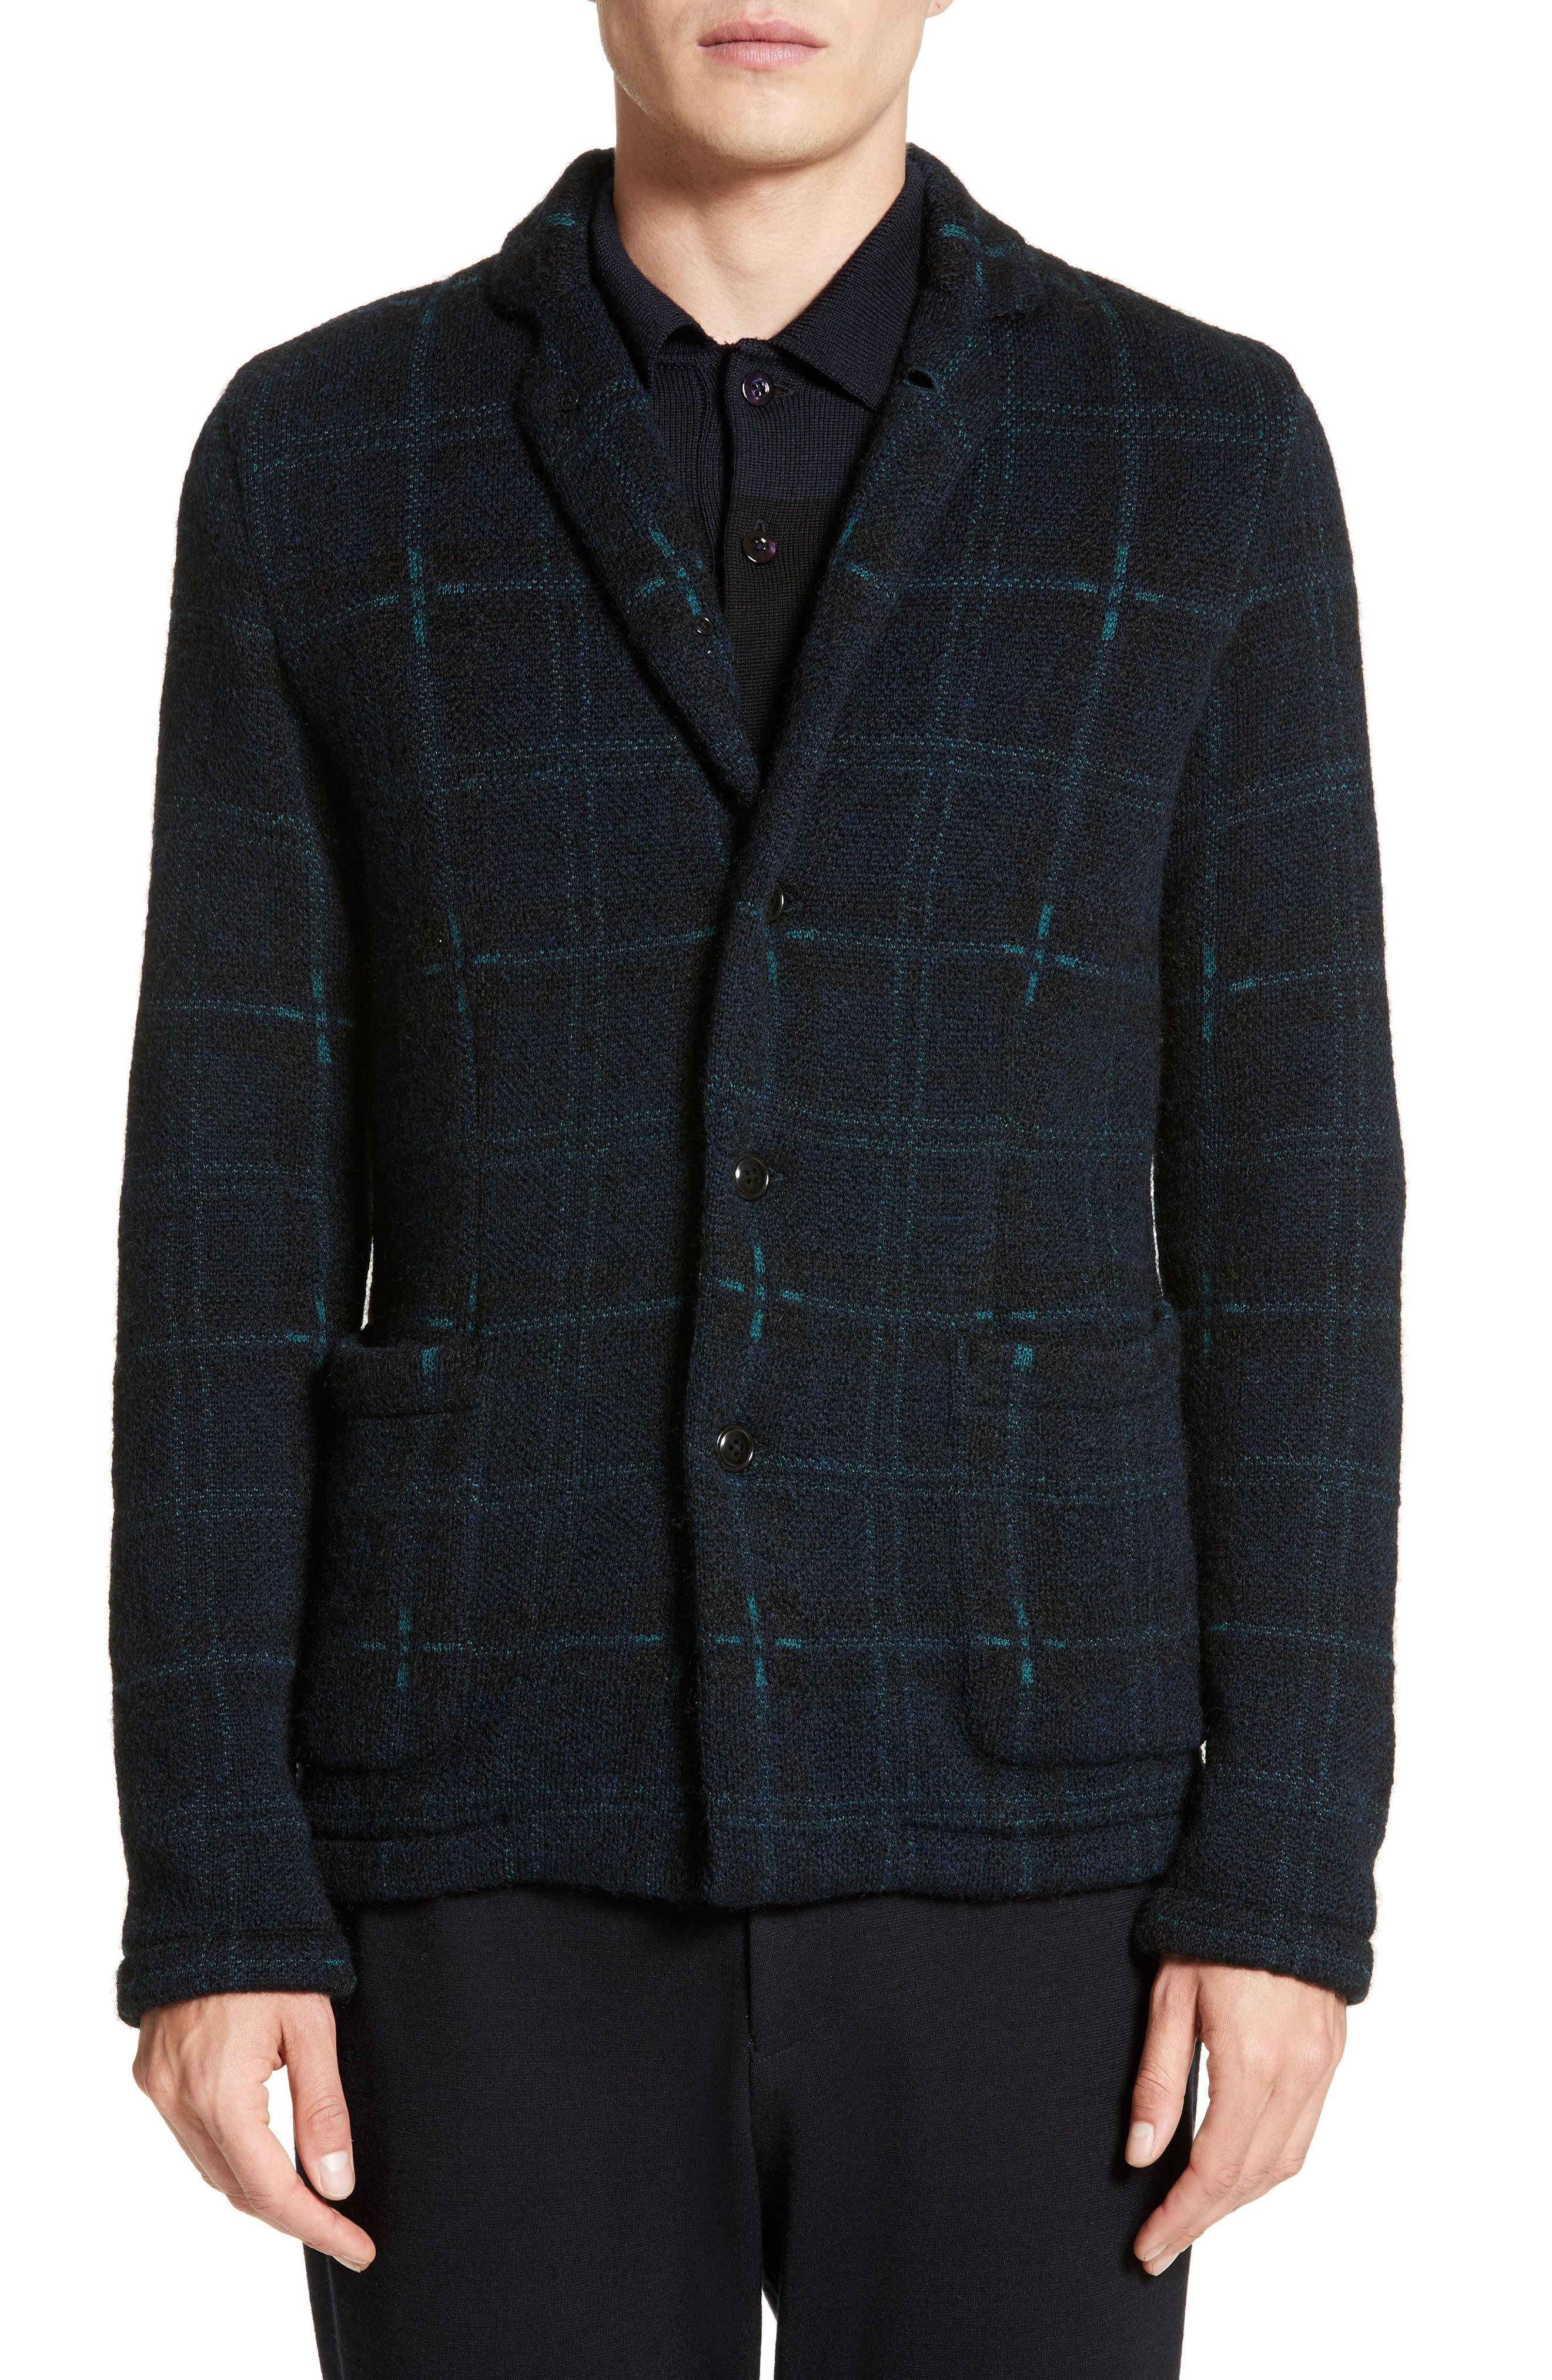 Wool Blend Knit Sportcoat,                             Main thumbnail 1, color,                             Navy